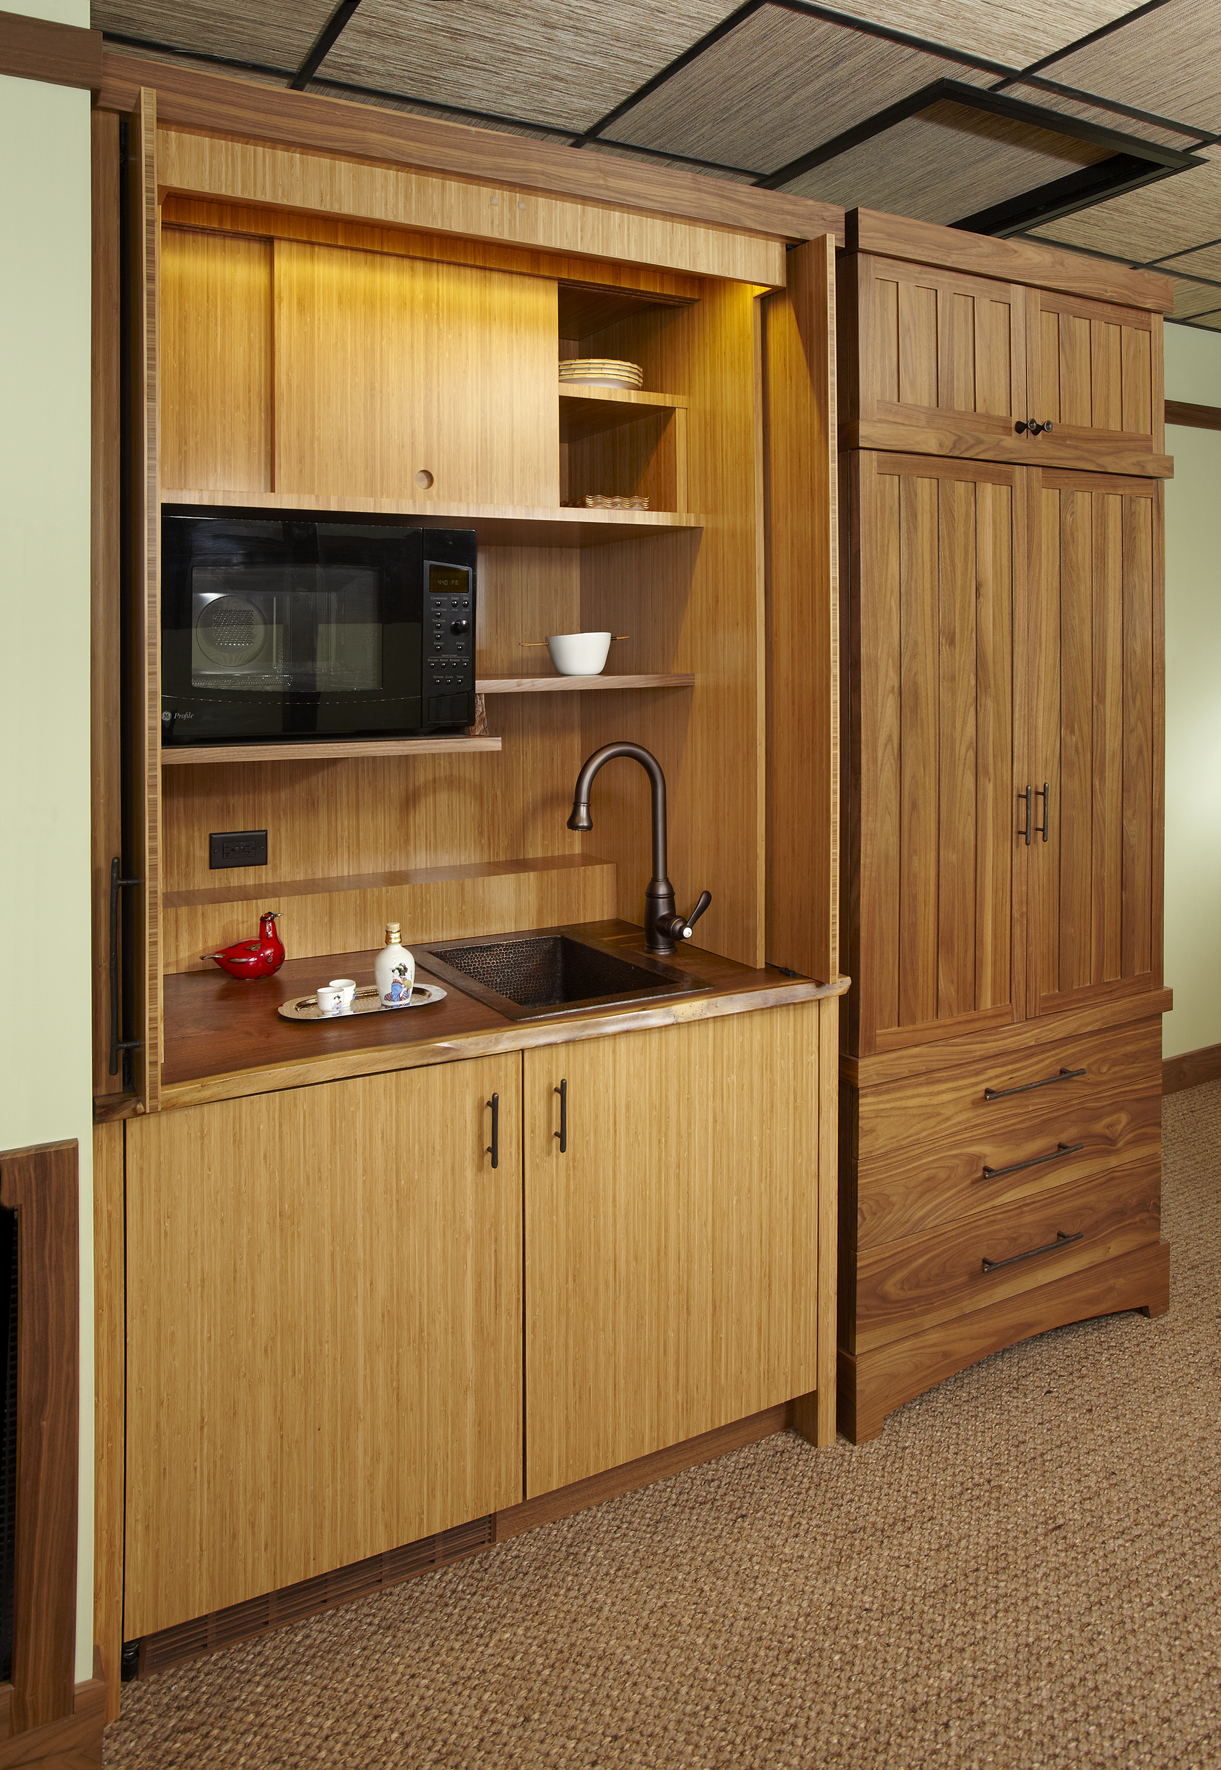 Kitchenette and Wardrobe